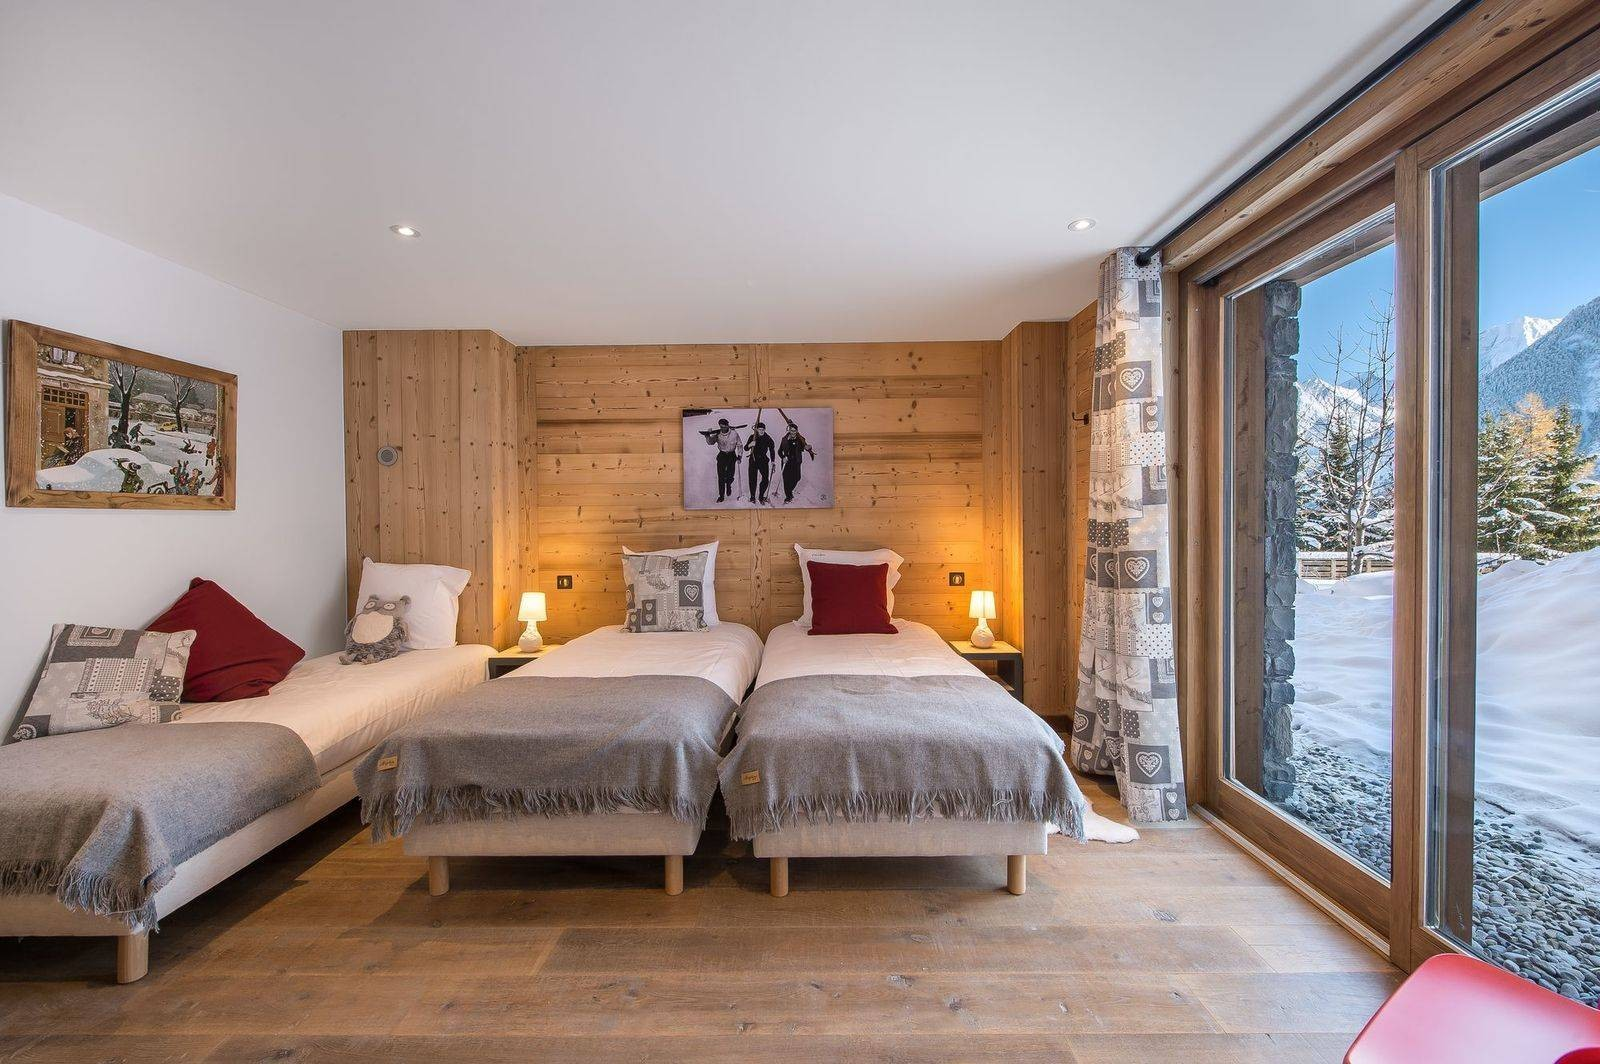 Courchevel 1550 Location Chalet Luxe Nibite Chambre 3